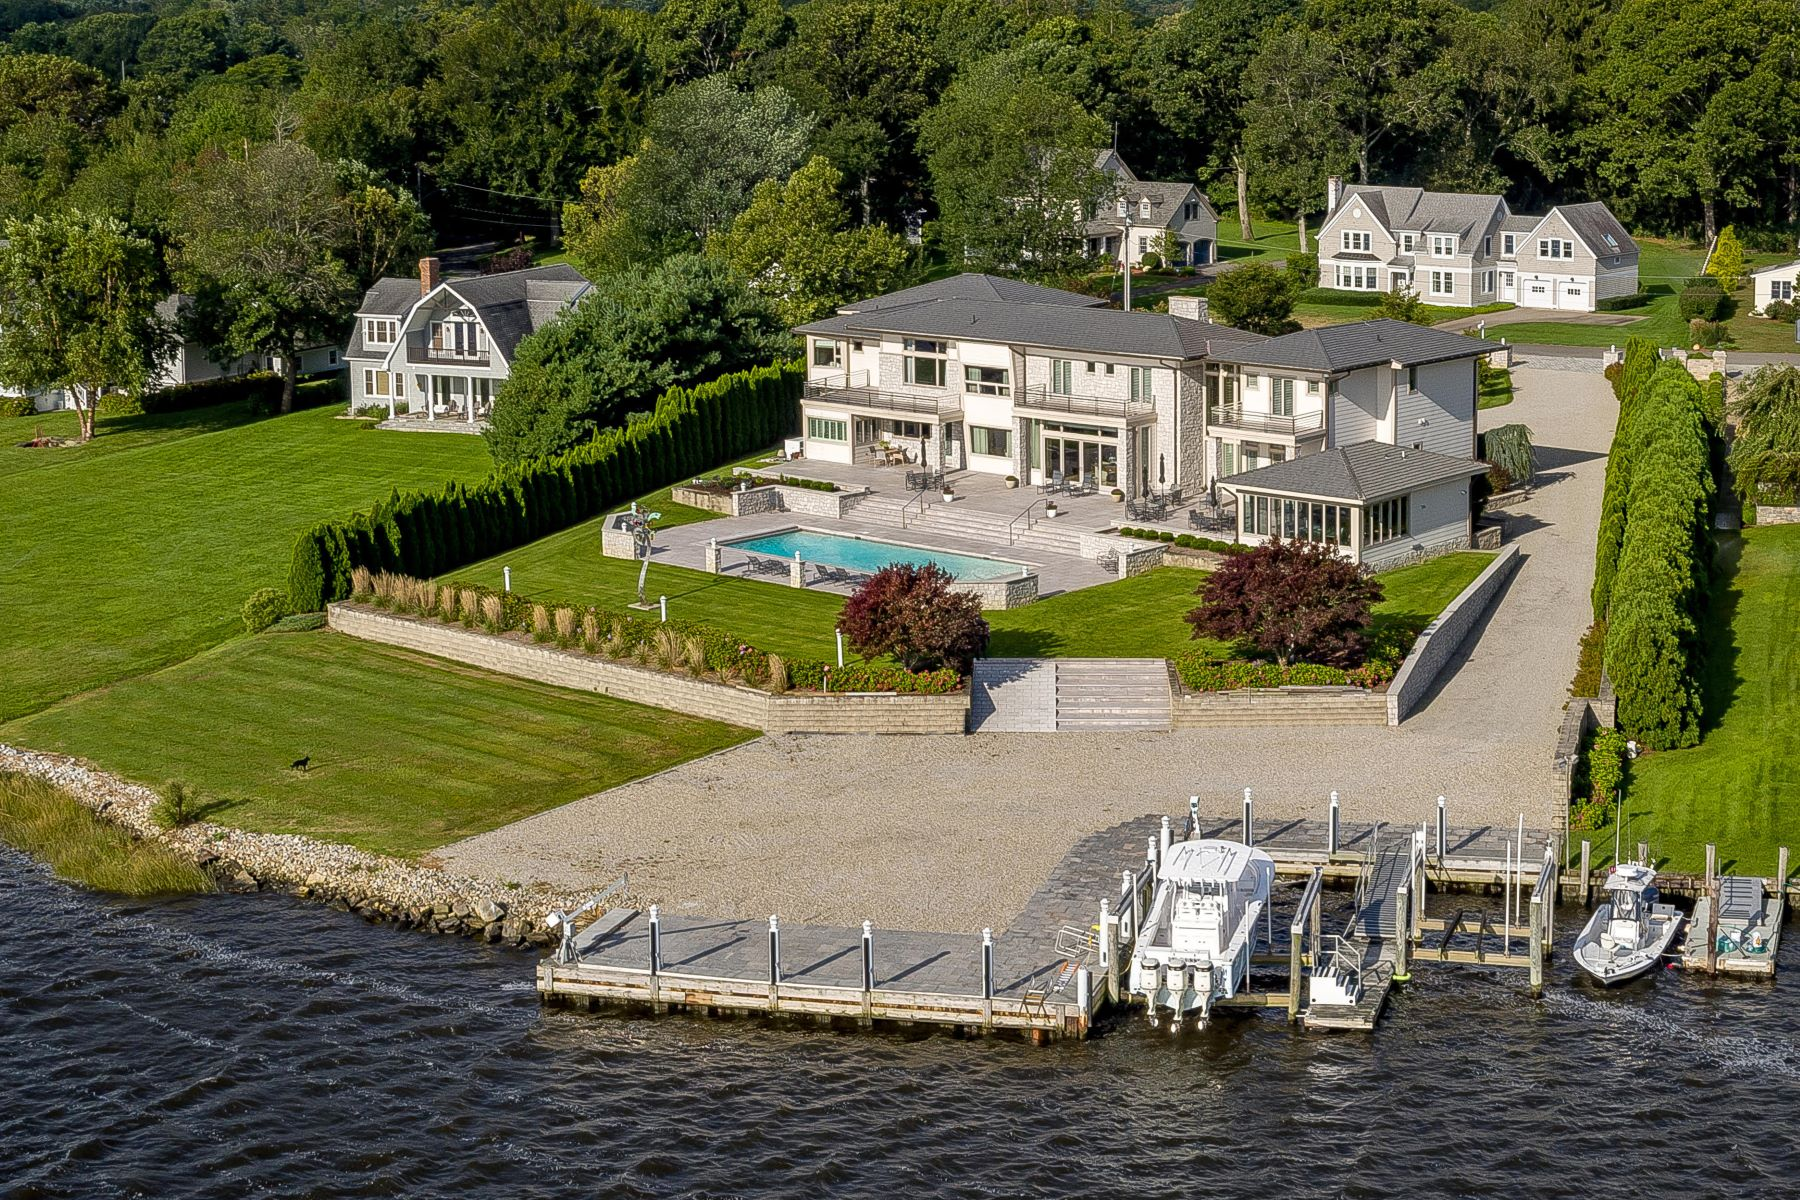 Single Family Homes for Sale at Unique Waterfront Home 20 Saltus Drive Old Saybrook, Connecticut 06475 United States